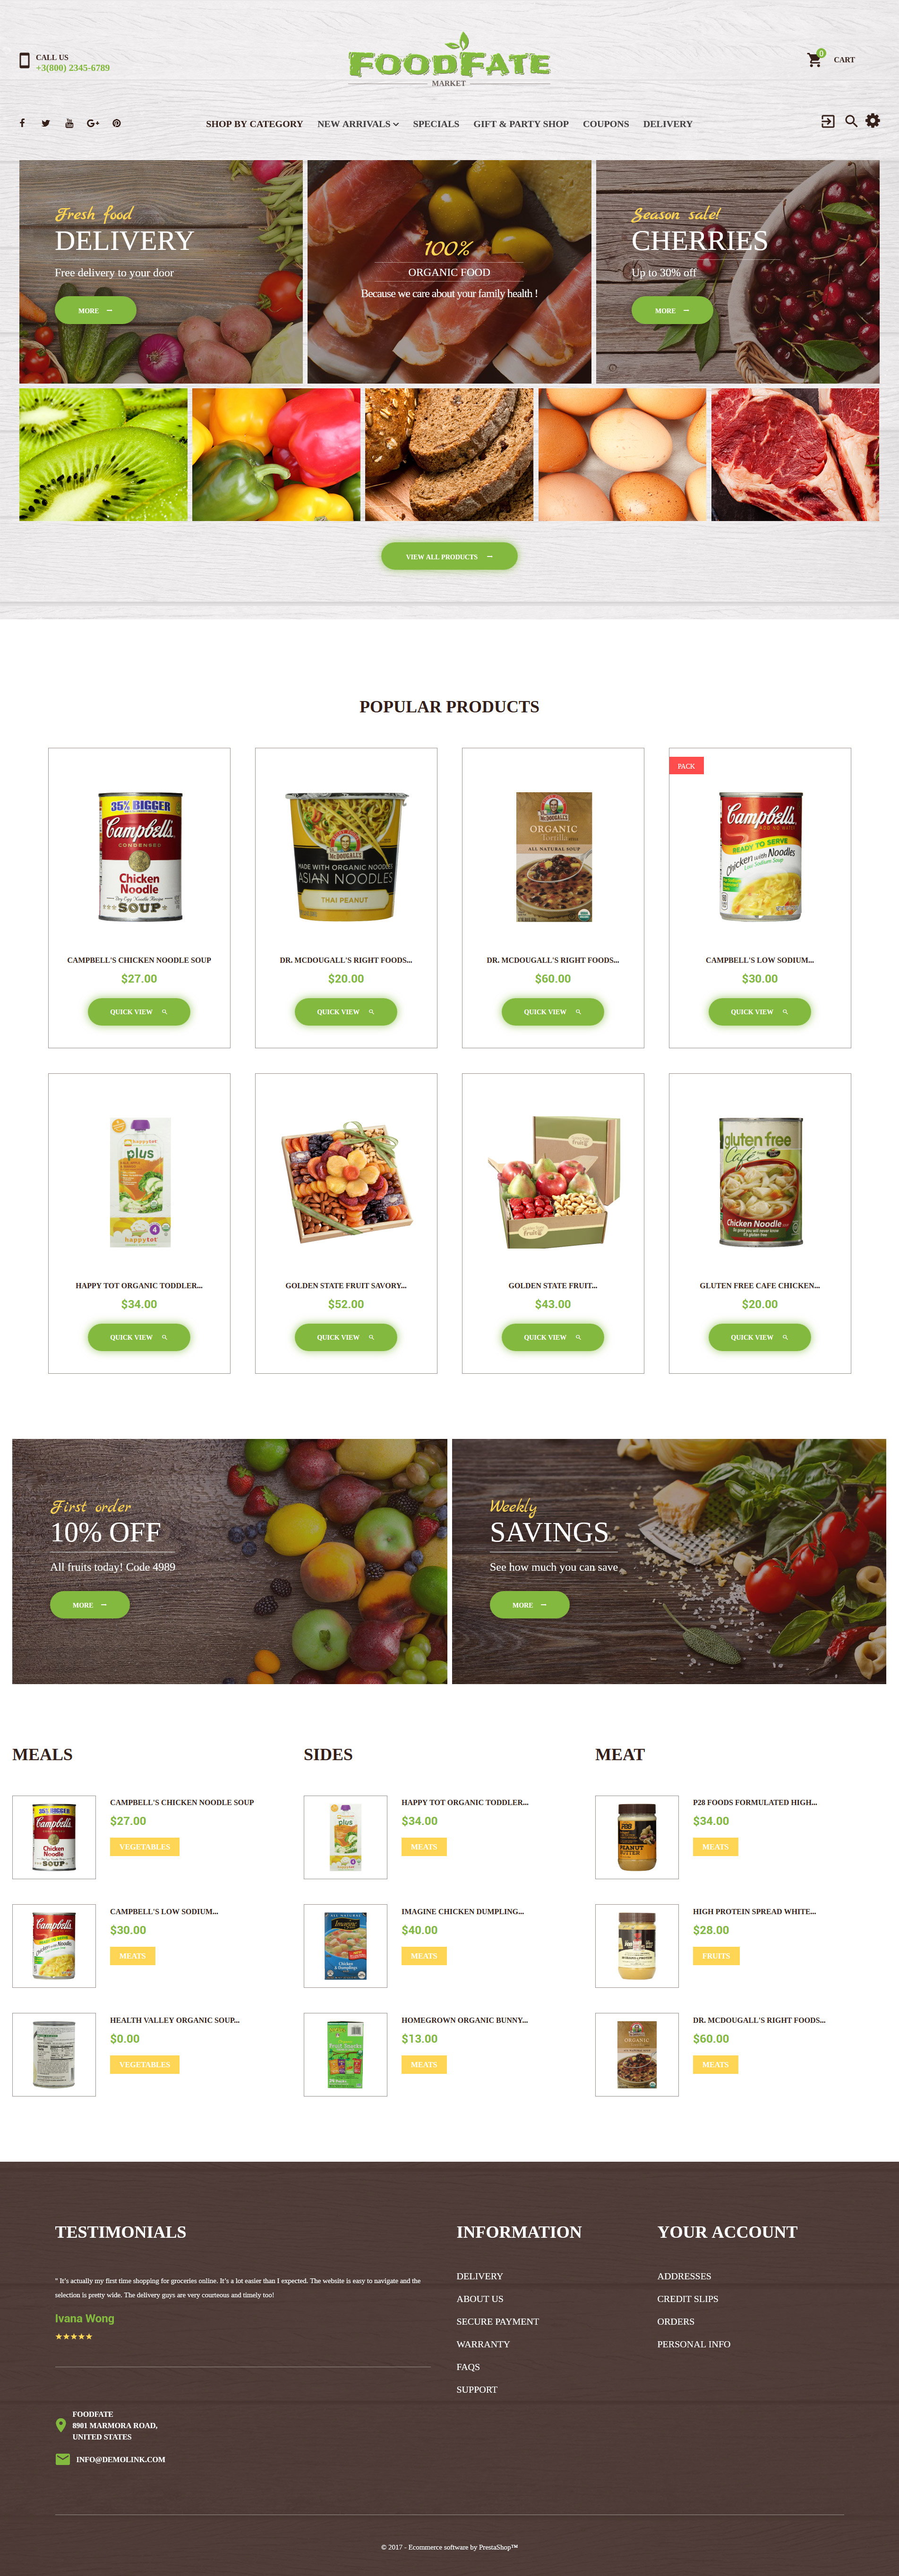 Website Design Template 62186 - asian online store fruit natural company manufacturer production fresh beverage psd template wine cake cakes feast tasty delicious gourmet vegetables fruits